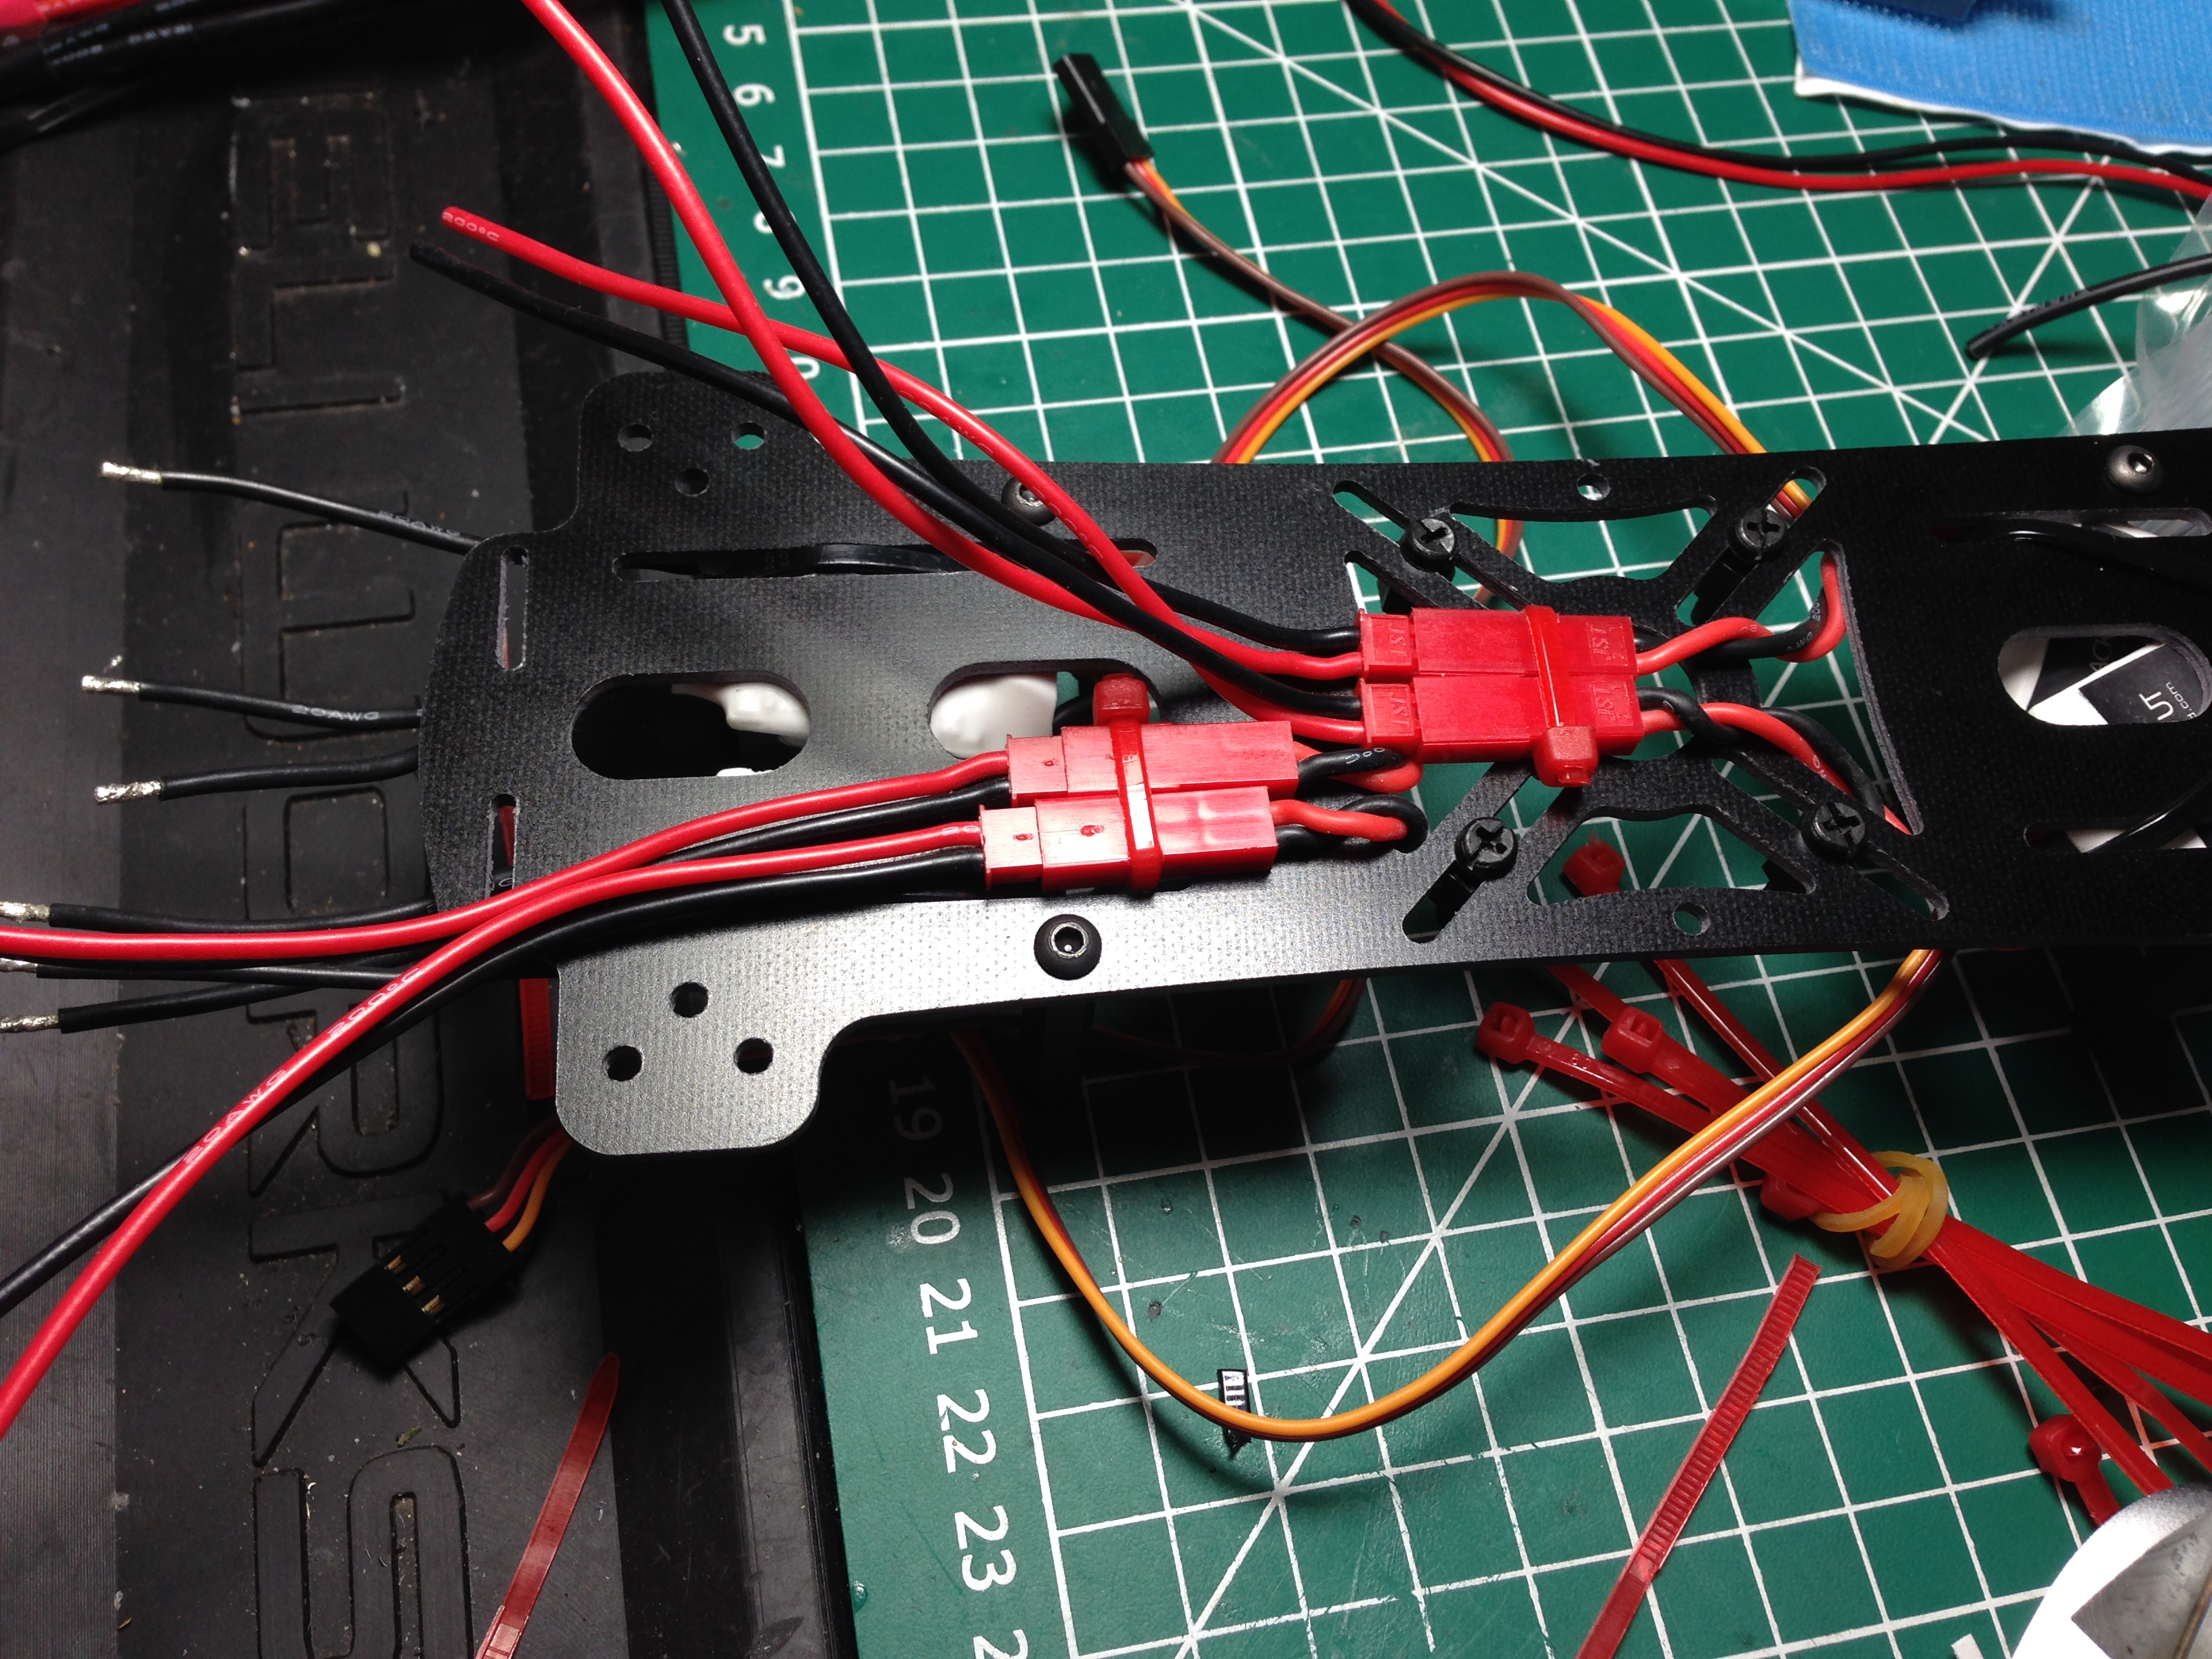 Starting to build the power distribution system for the FlyXcopter FlyX-Mini